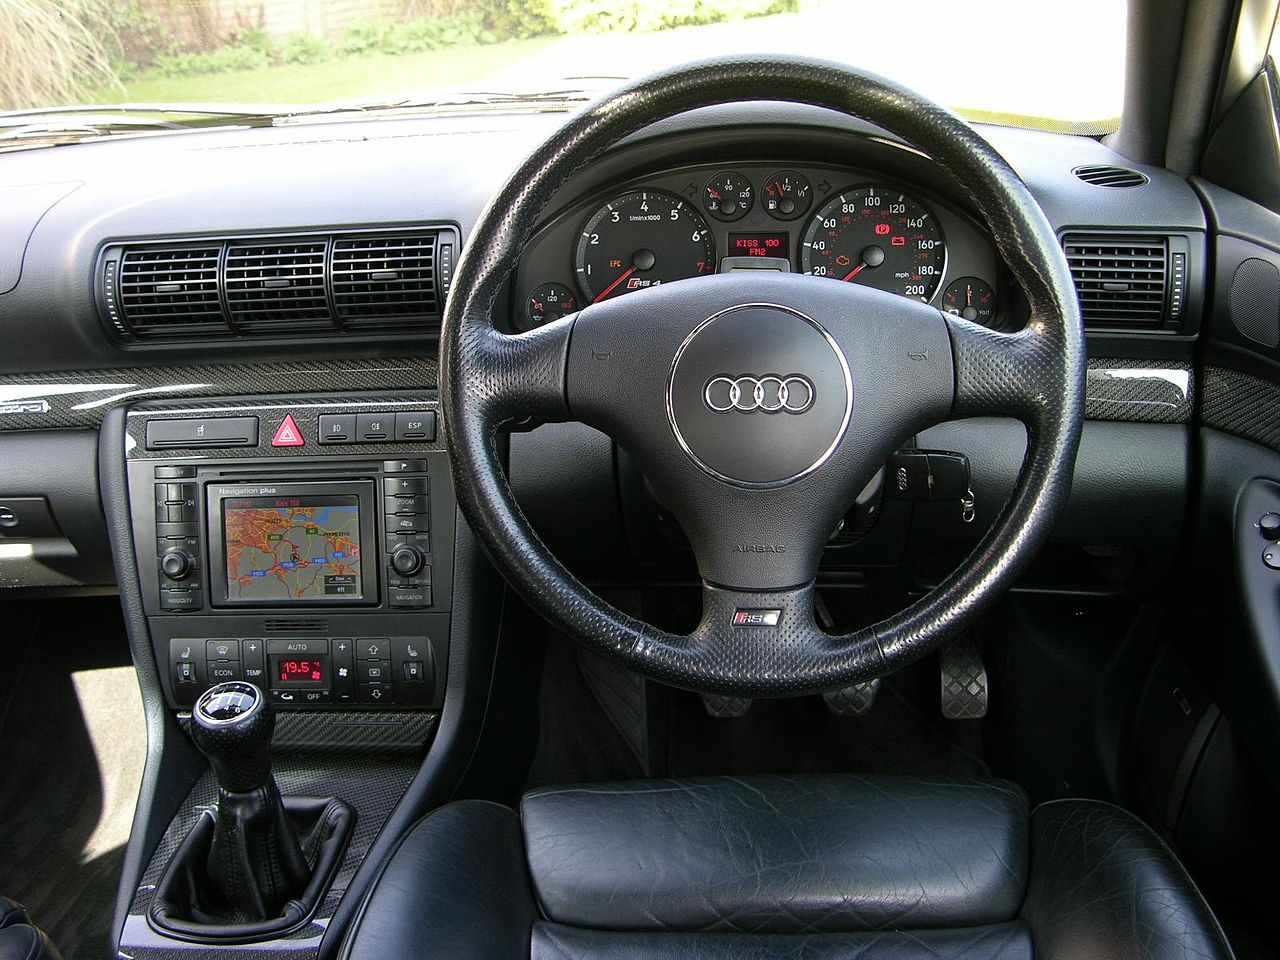 file 2001 audi rs4 b5 avant flickr the car spy 10. Black Bedroom Furniture Sets. Home Design Ideas